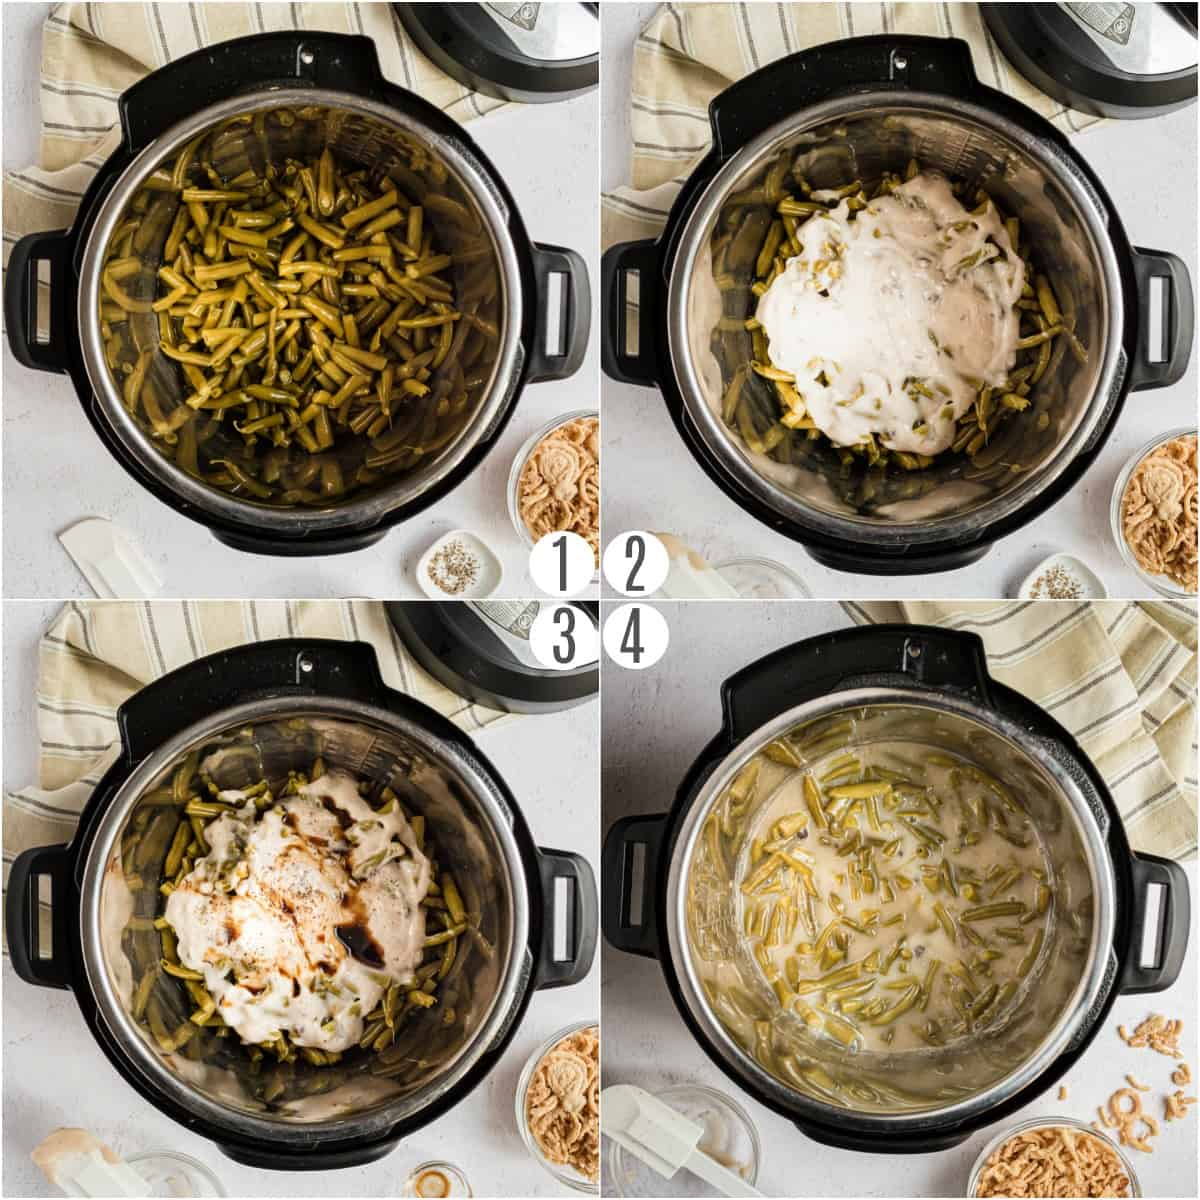 Step by step photos showing how to make green bean casserole in the Instant Pot.